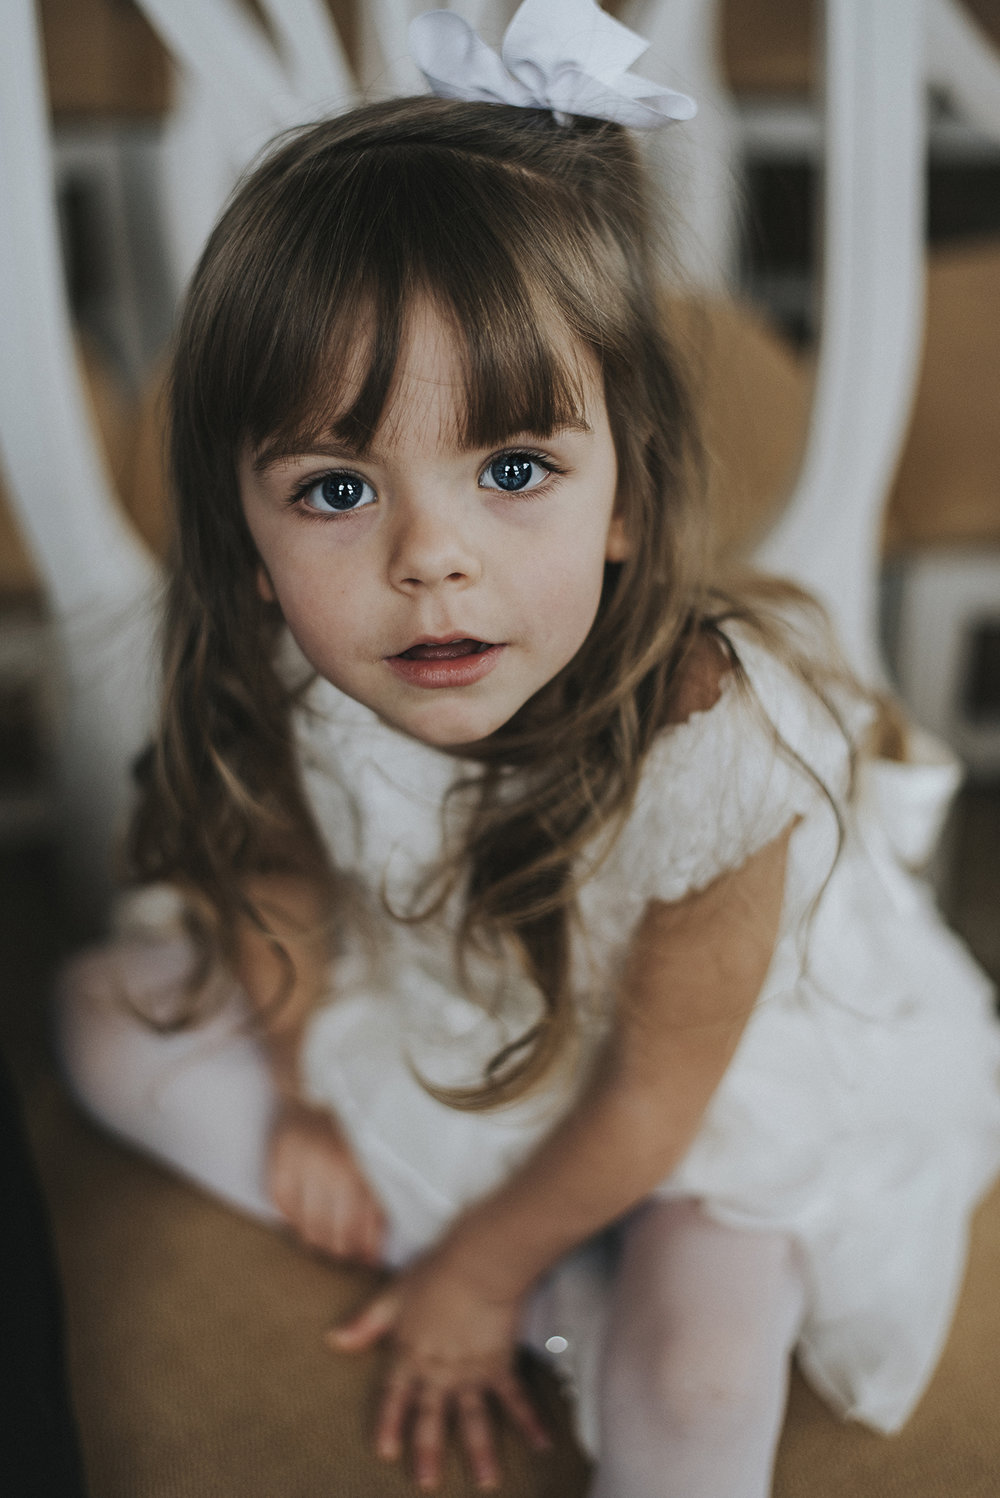 I captured this beautiful little girl at a wedding.